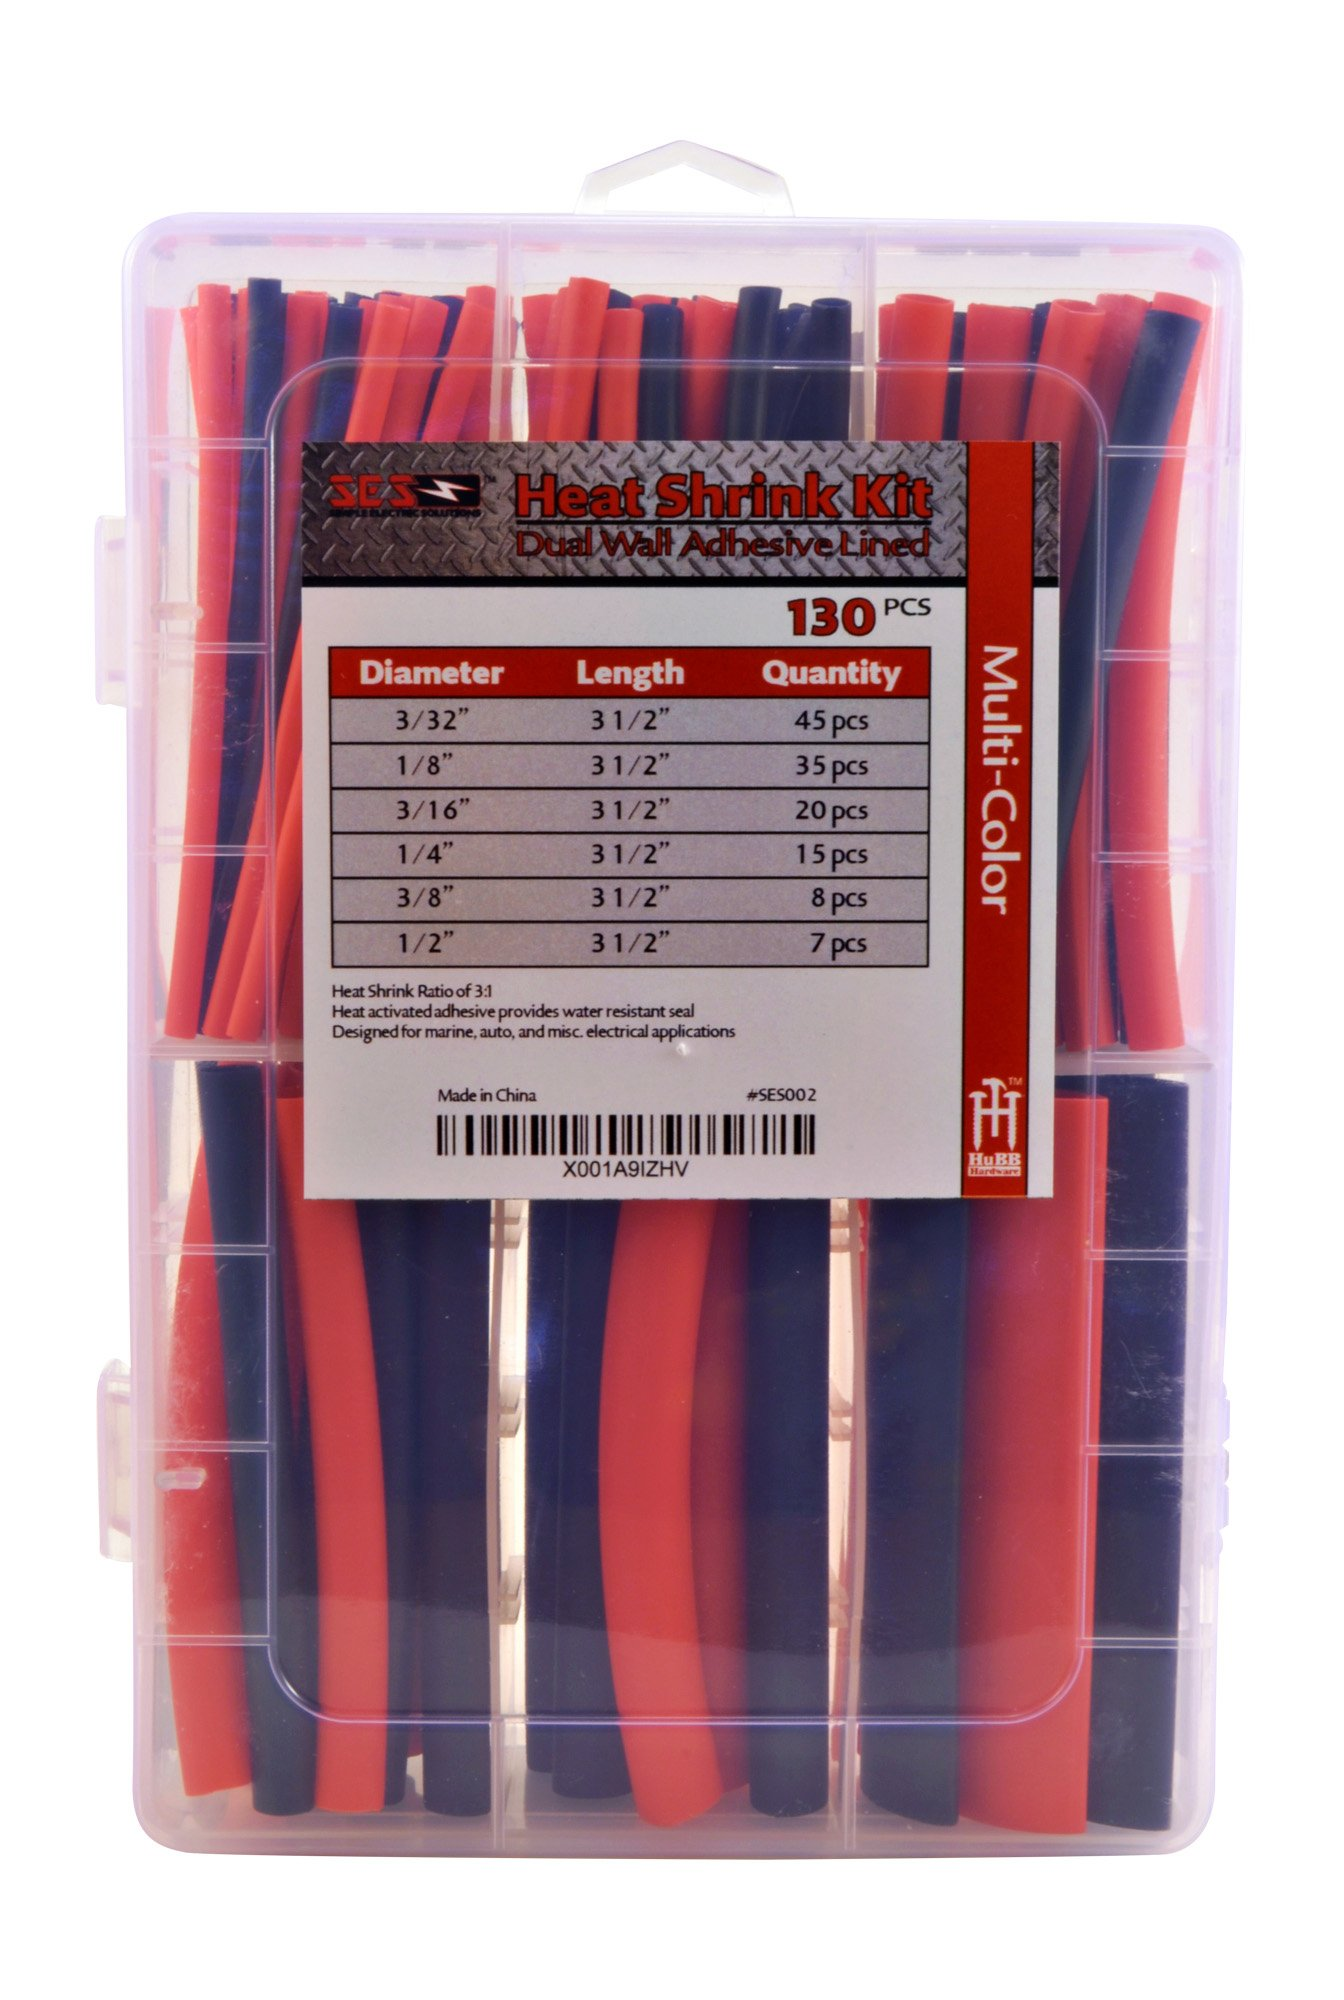 130 PC. Dual Wall Adhesive Marine Heat Shrink Kit - 3:1 Shrink Ratio - Black and Red by Simple Electric Solutions (Image #3)